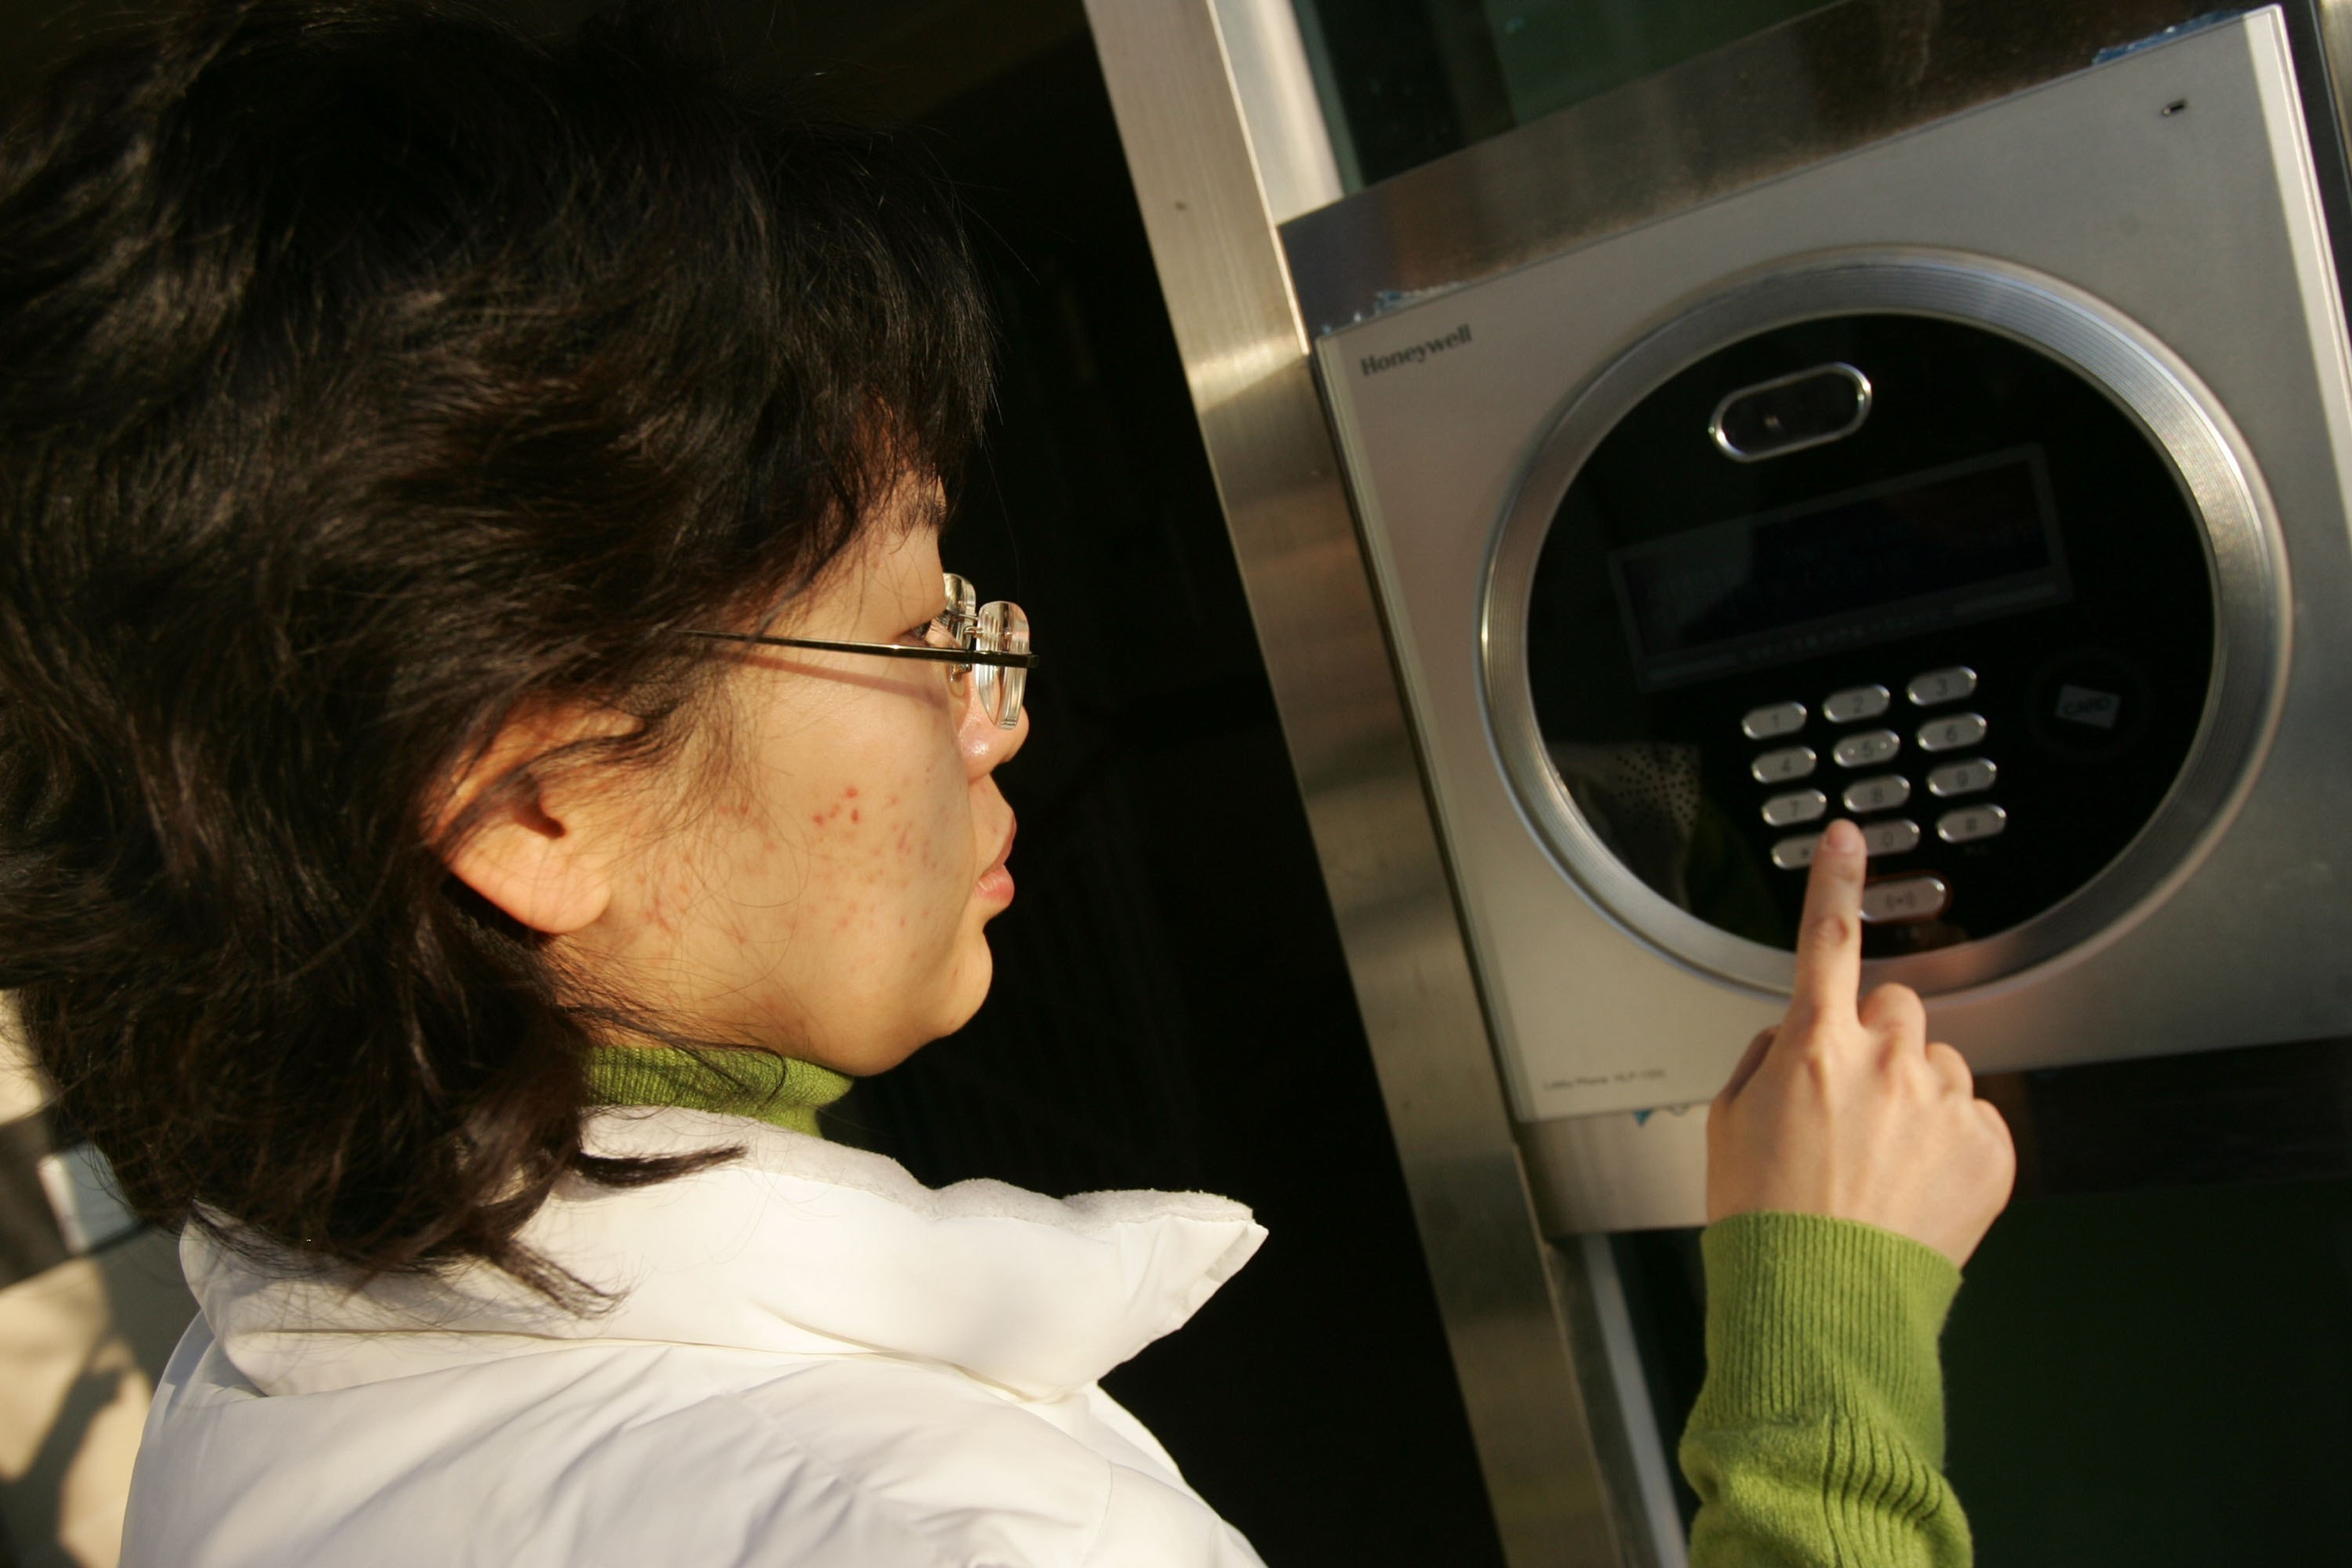 A resident uses a keypad to enter her home at the smart home town complex (Home Network) on November 29, 2006 in Incheon, South Korea.